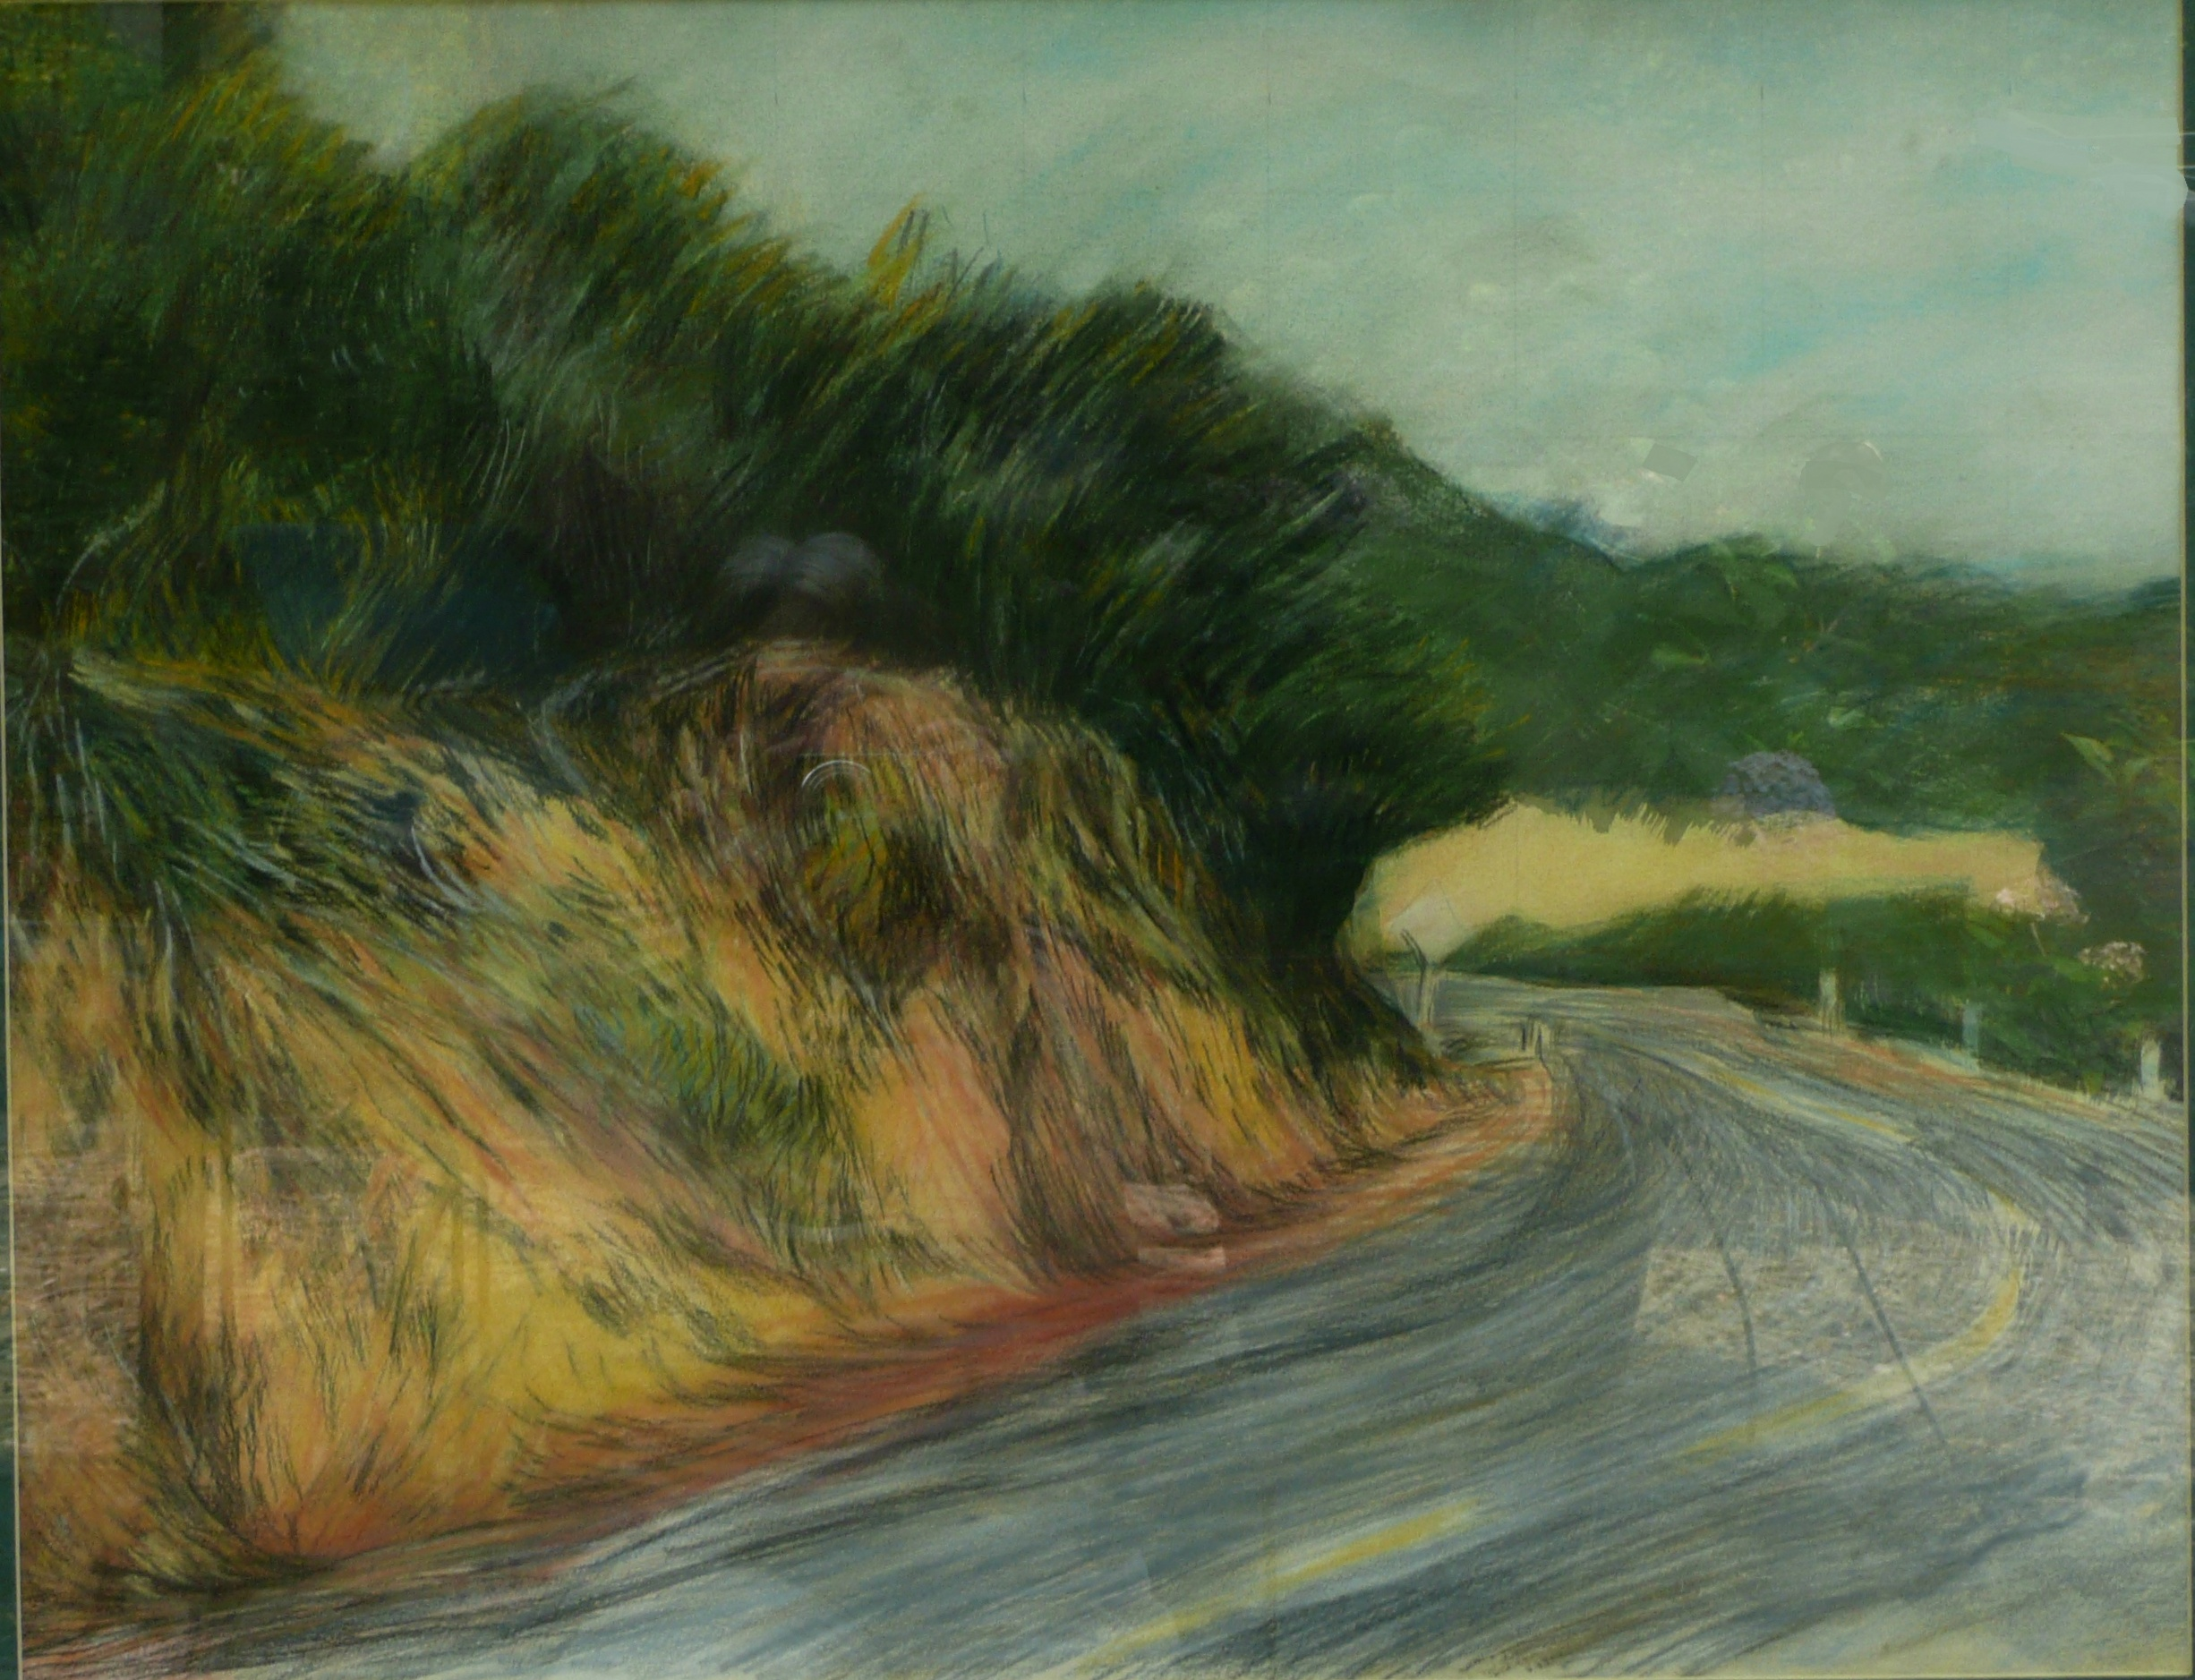 Mulholland Drive    , 31 x 22 inches, 1984, pastel.  White road markers beside and yellow lines on the baked asphalt two-lane road curl and curve into a blind corner.  The winding street in the Santa Monica Mountains behind Hollywood, running all the way to the beach, inspired 2001 American neo-noir mystery film     Mulholland Drive     .